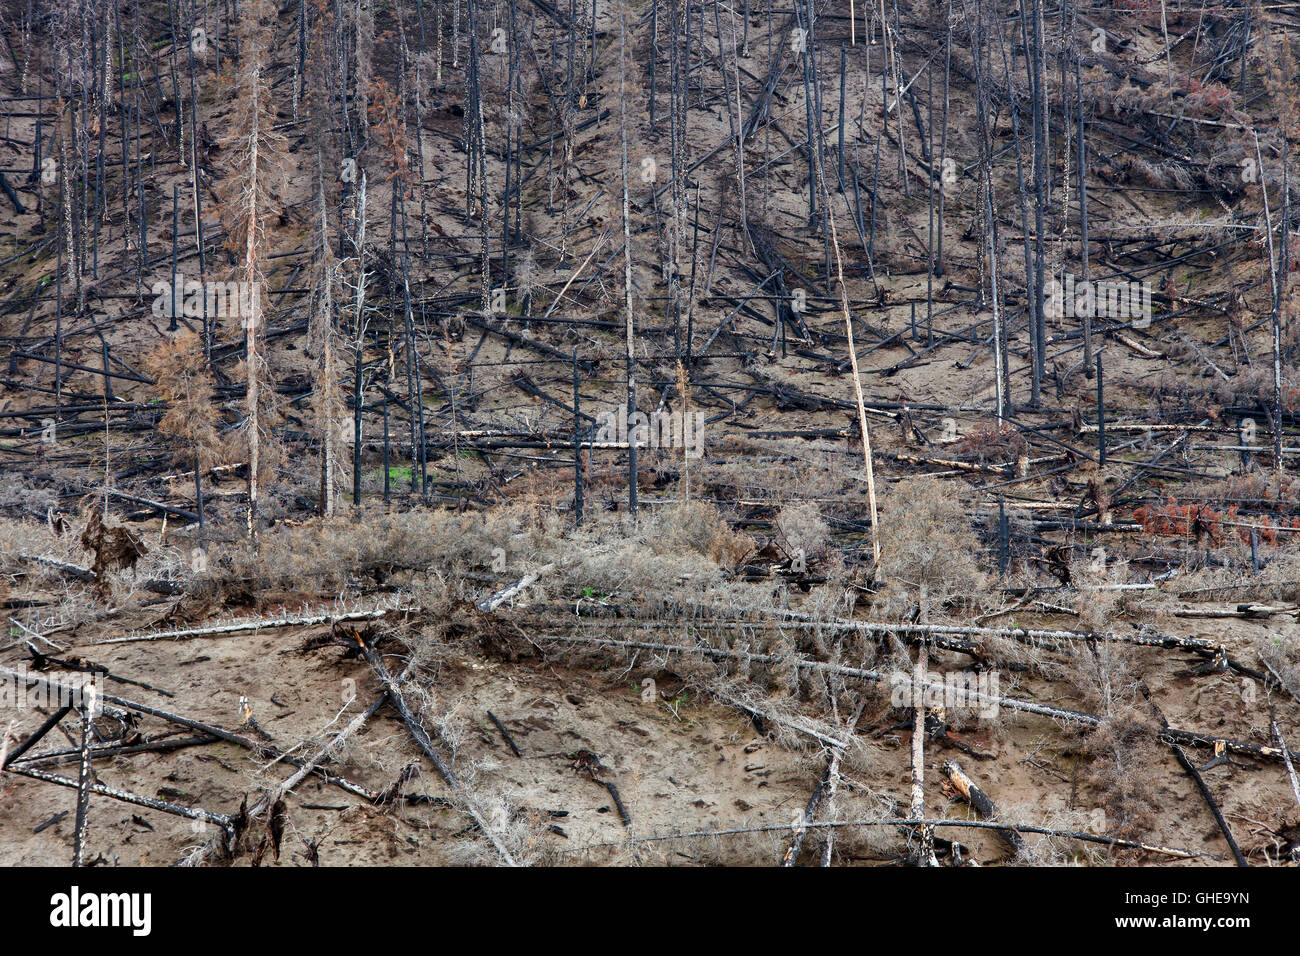 Charred tree trunks burned by forest fire, Jasper National Park, Alberta, Canada - Stock Image